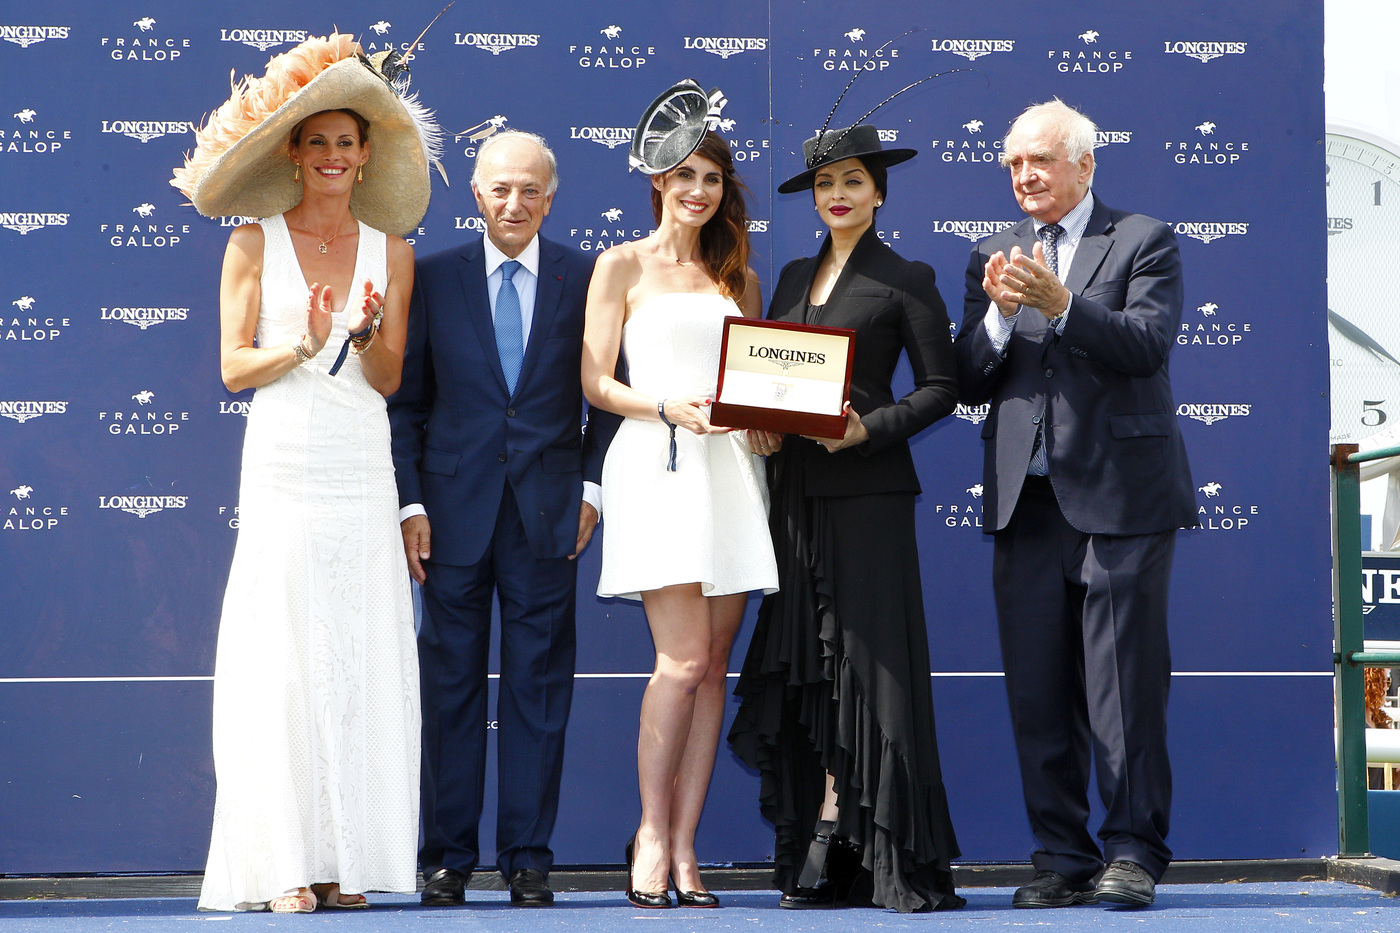 Longines Flat Racing Event: The Prix de Diane Longines – 45'000 spectators, 9 races, 1 Queen of Elegance and 1 King of the Prix de Diane Longines 4